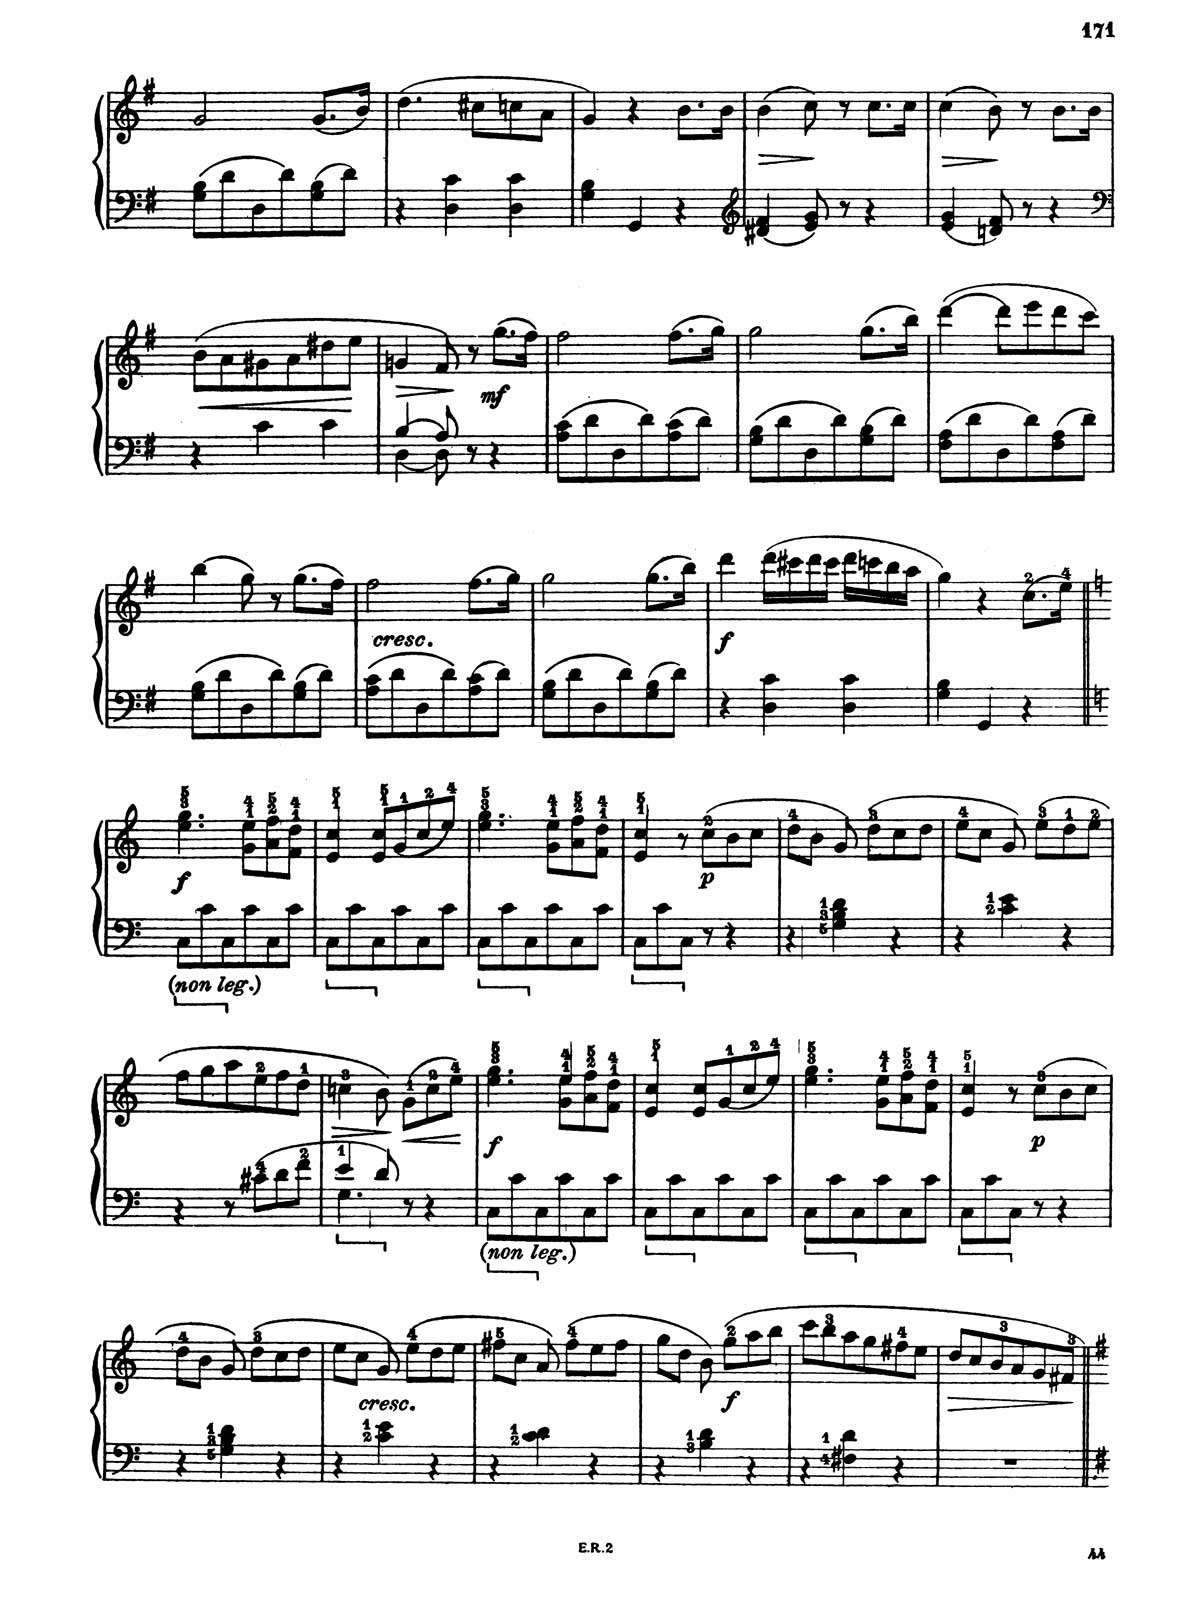 Beethoven Piano Sonata 20-8 sheet music